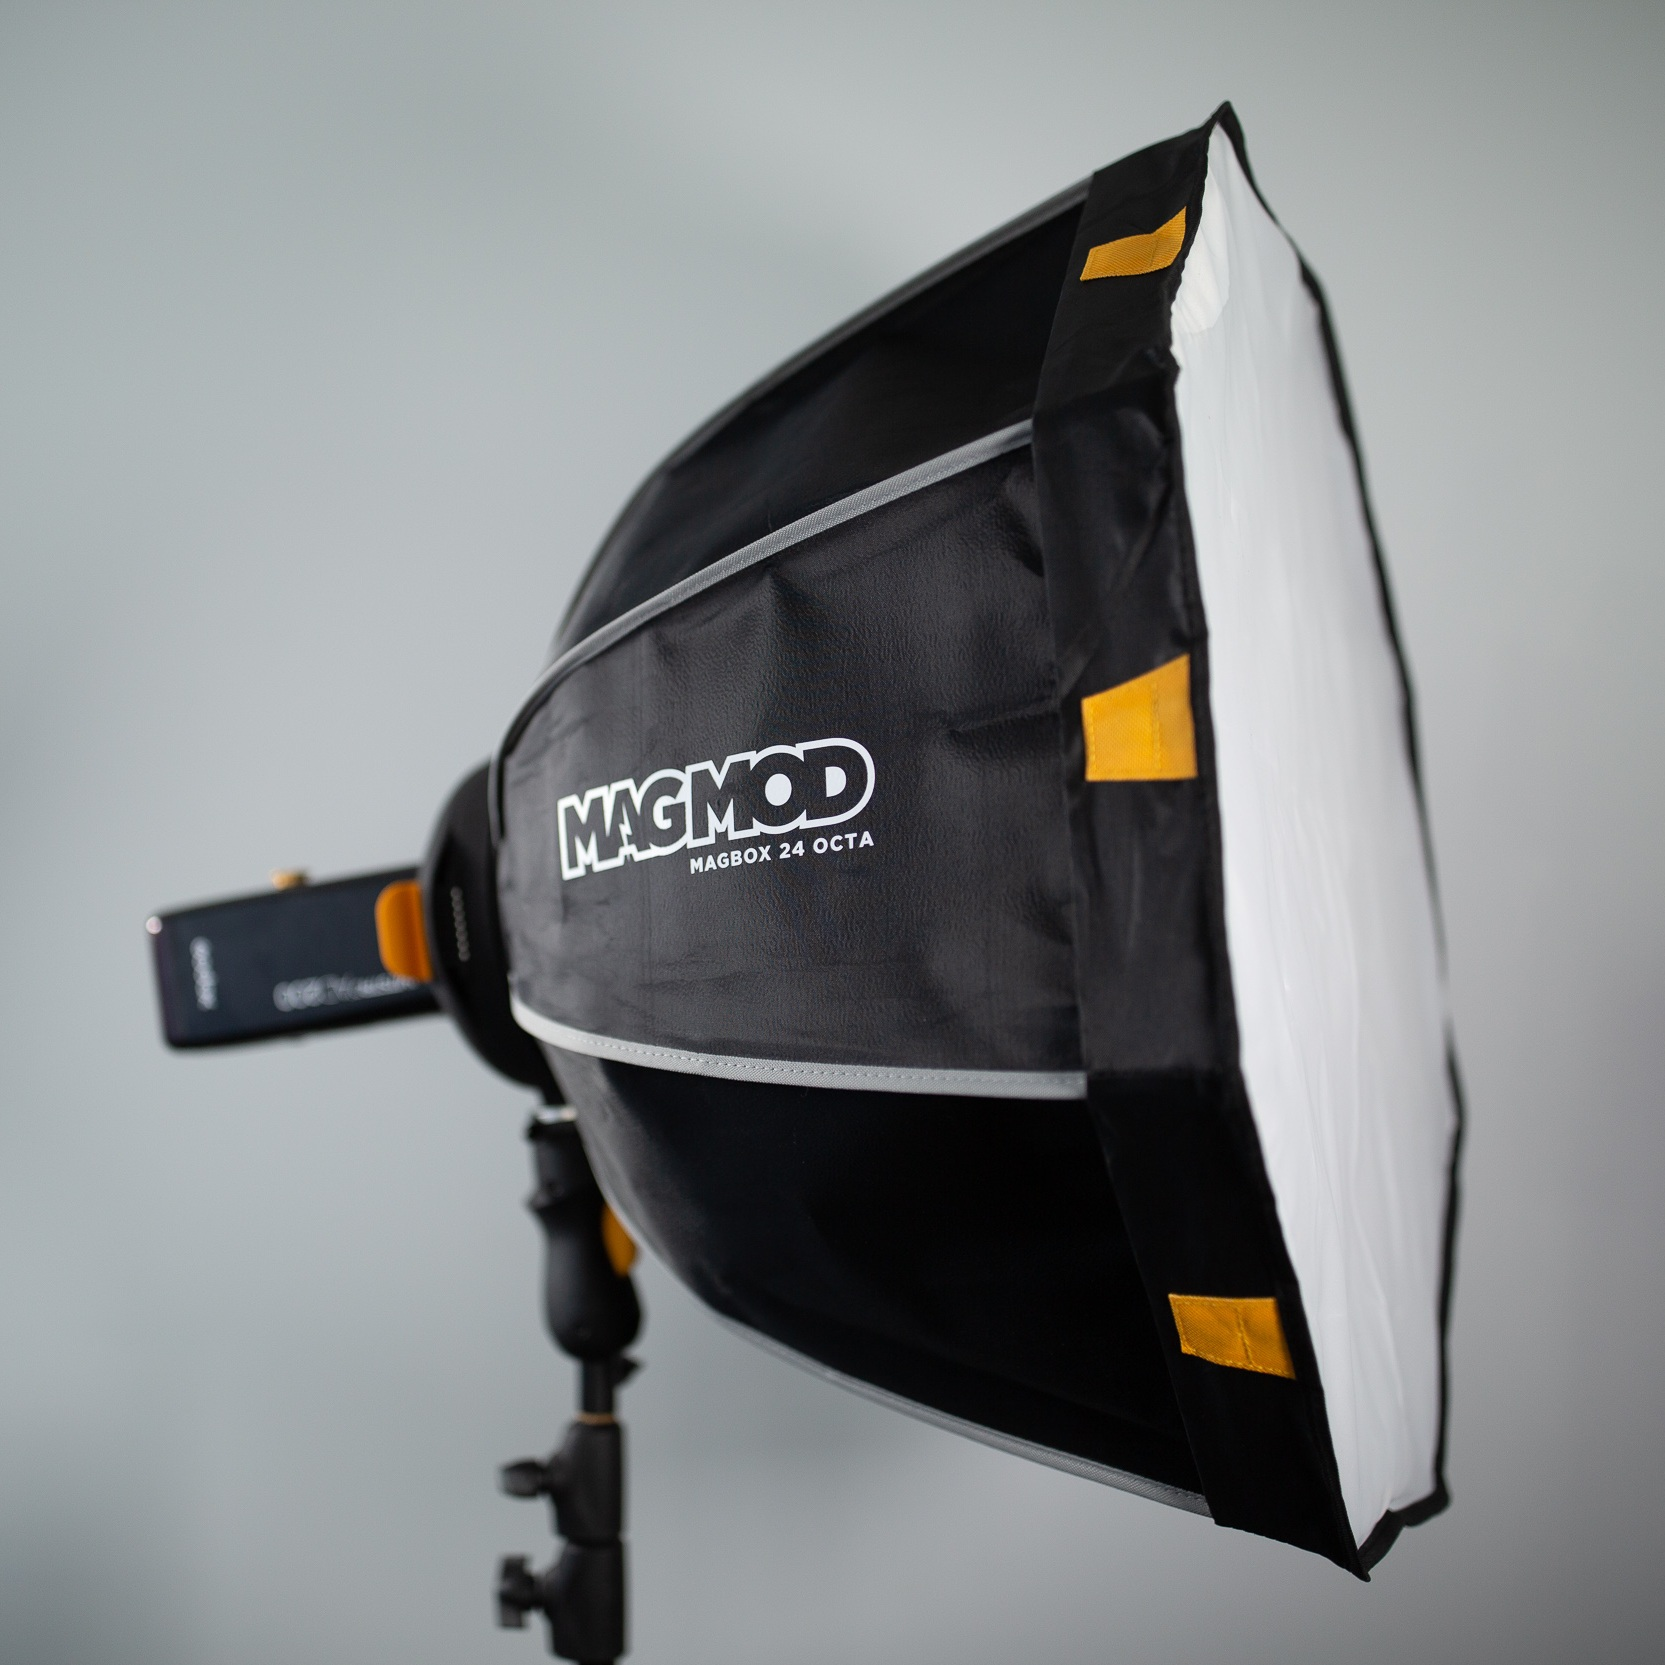 "MagMod Mag Box 24"" - MagMod's softbox completes their system of flash modifiers.> Extremely fast setup if MagGrips are attached to your flashes.> Included double flash bracket (MagRing) allows you to use two V860 II or AD200 units at the same time for more power.Please note: to use any MagMod product, you will have to put a MagGrip on every one of your flashes."